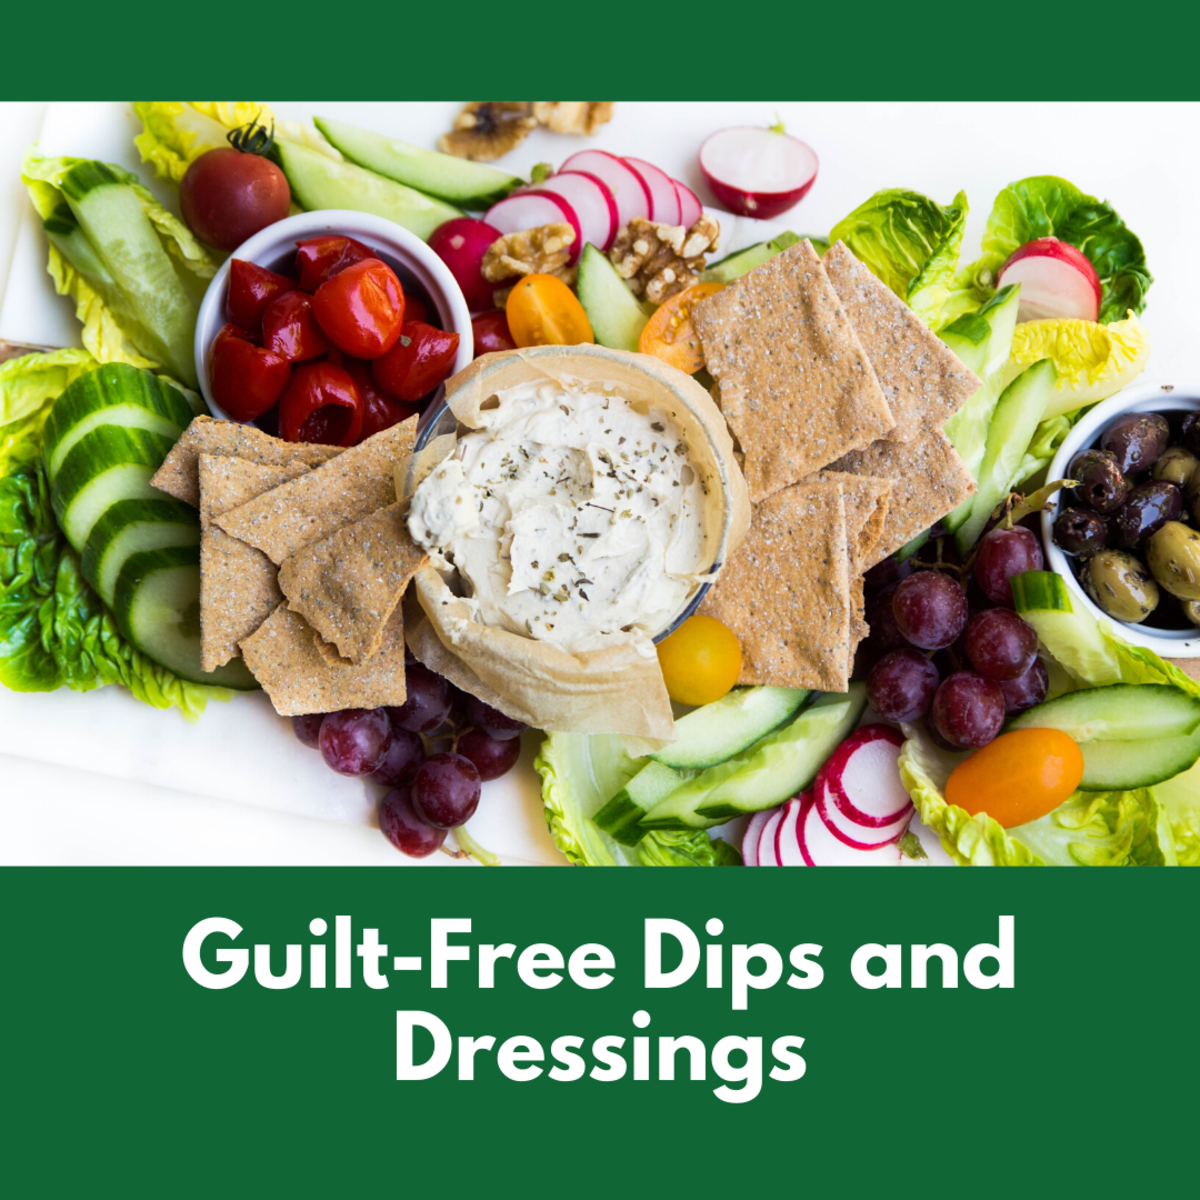 How to Make Easy and Guilt-Free Dips and Dressings